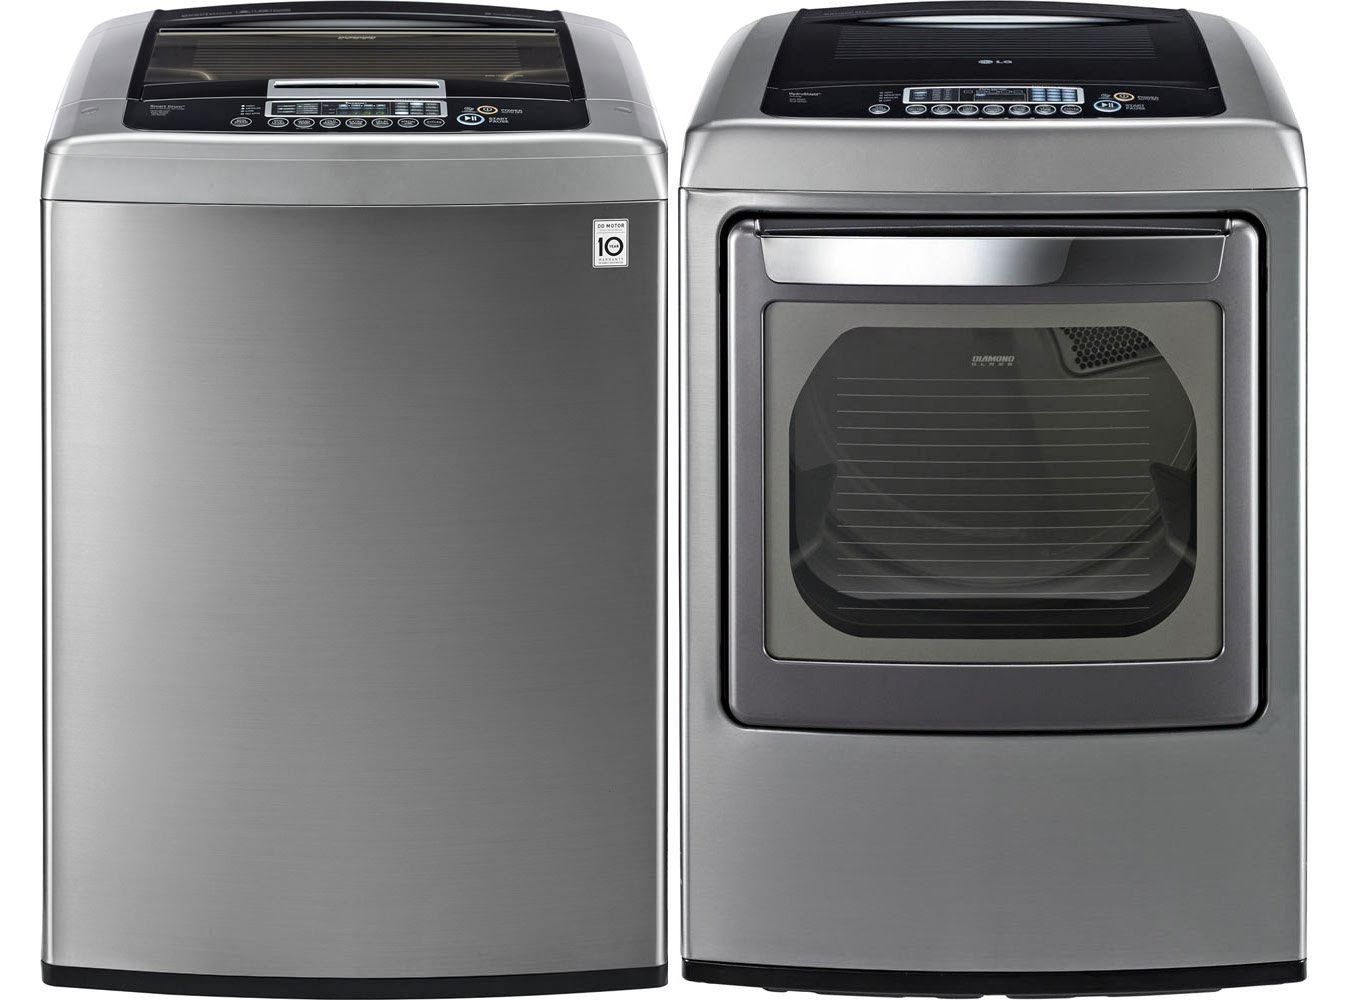 Lg all in one washer and dryer reviews - Lg Graphite 4 5 Cf Front Control Top Load Washer And 7 3 Cf Steam Electric Dryer